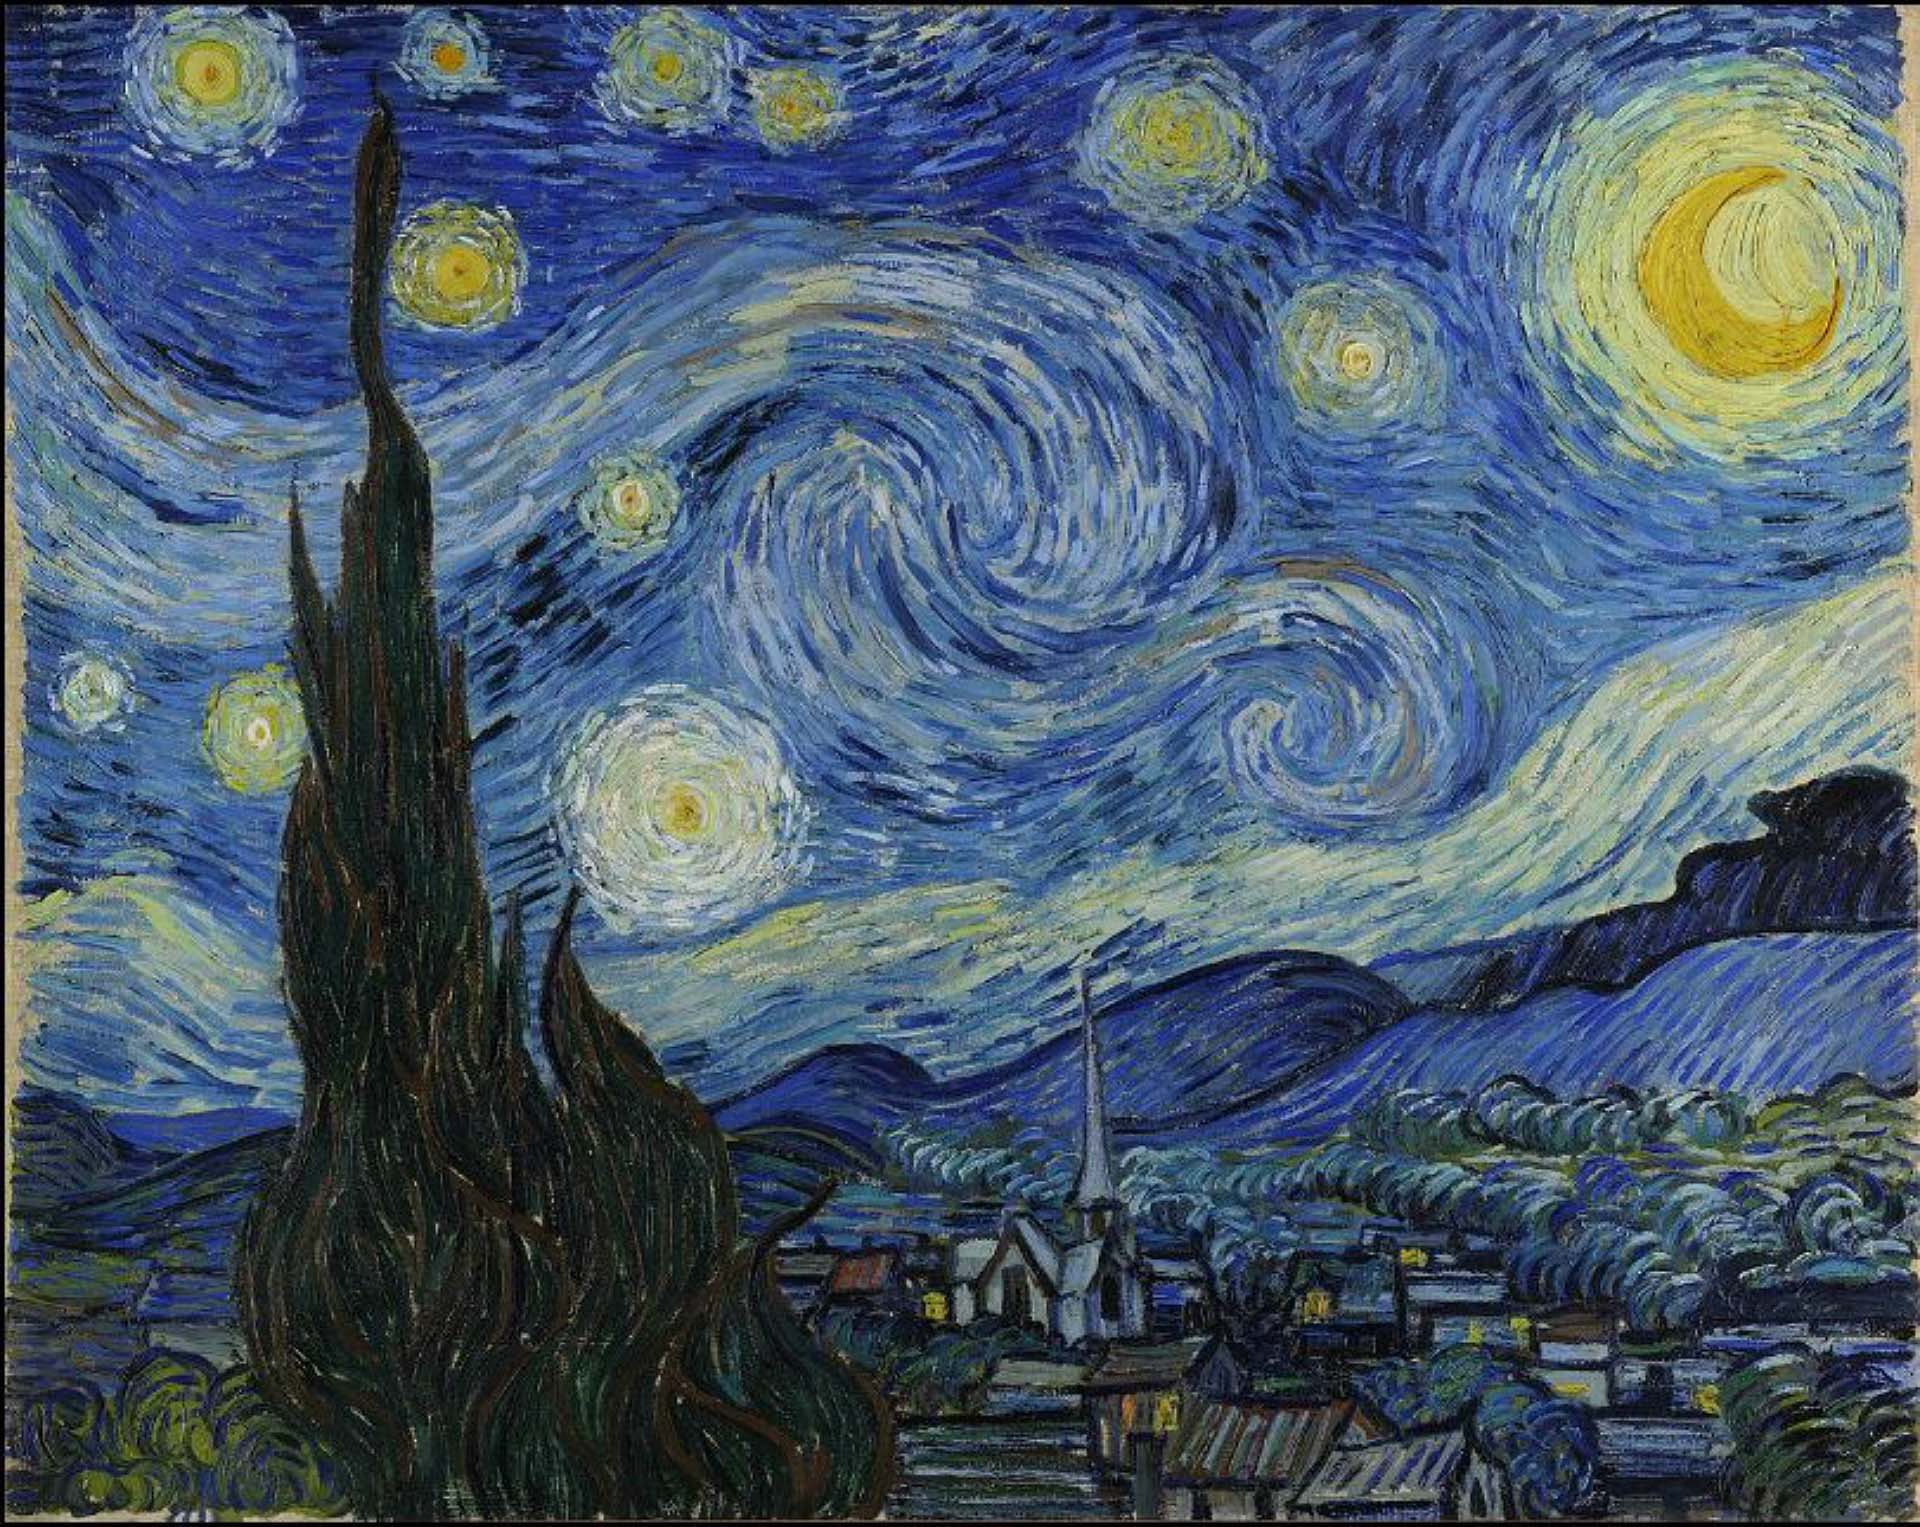 Image of the Starry night by Vincent van Gogh